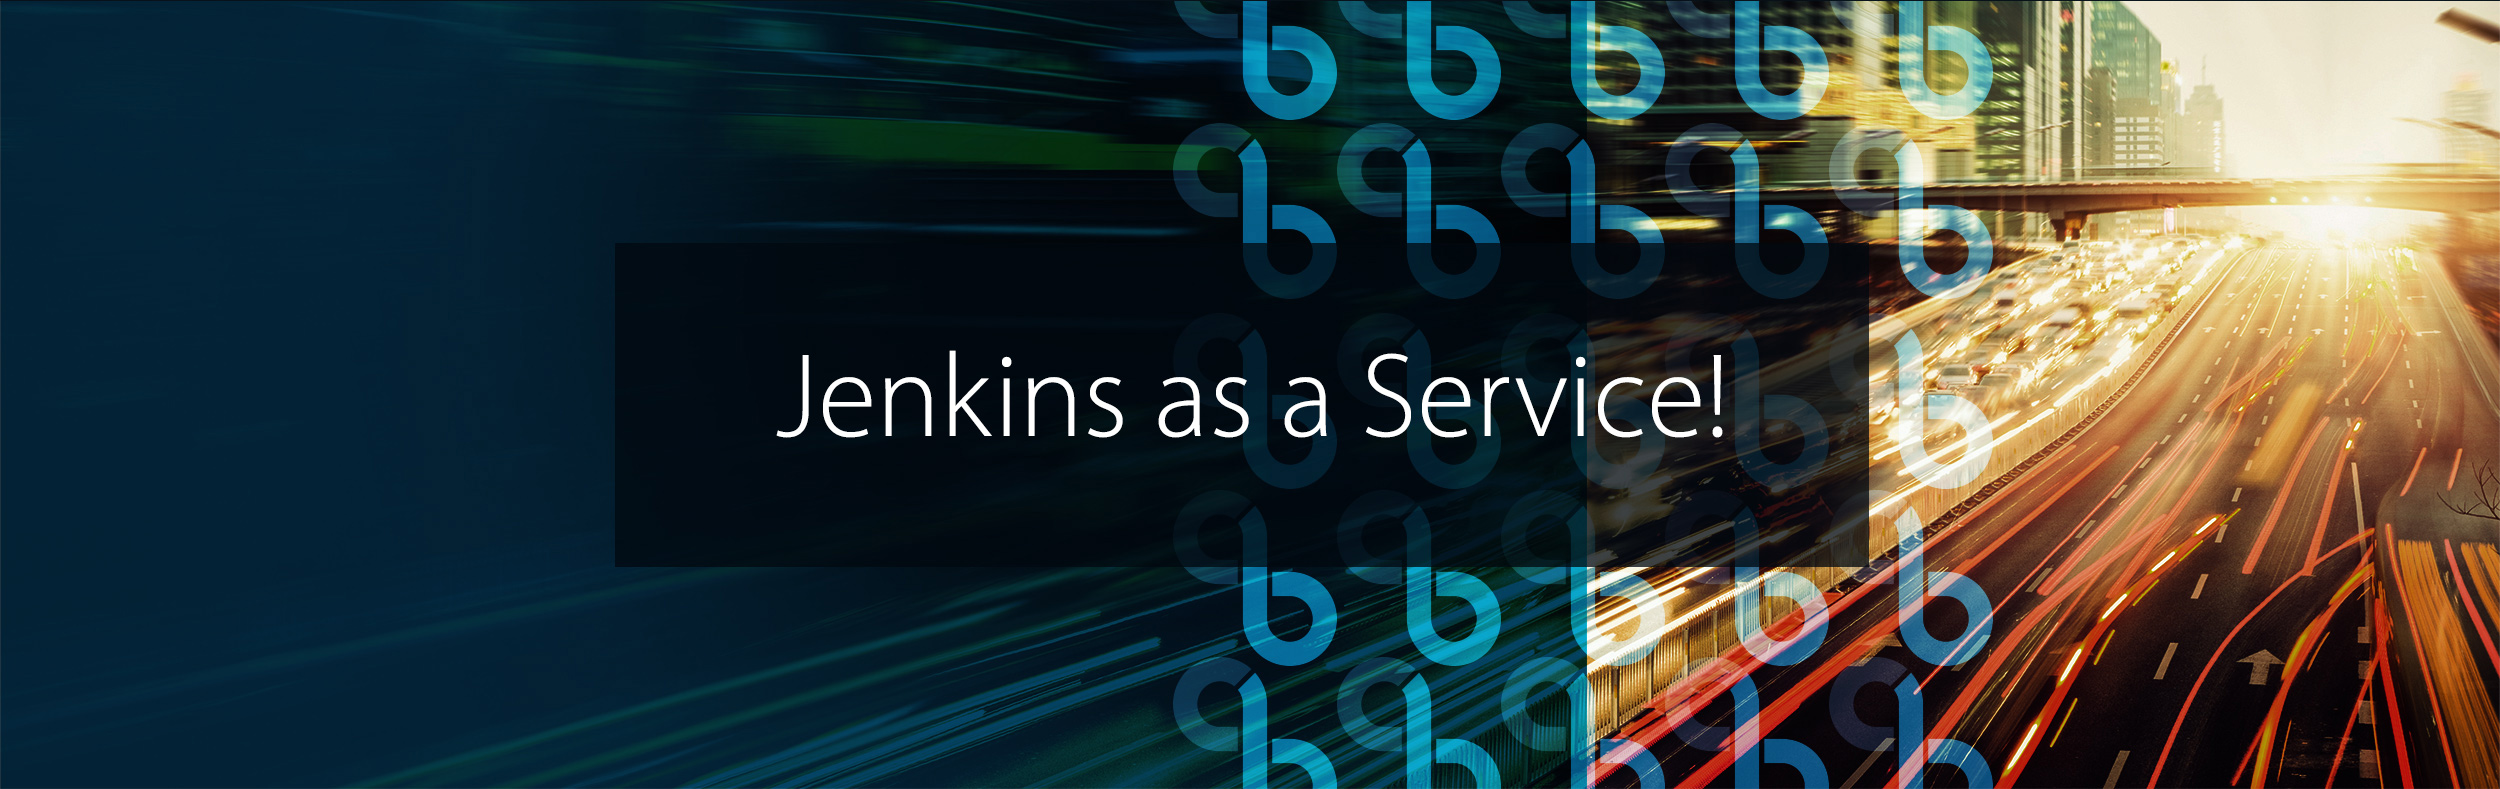 2017-06-20: CloudBees Lunch & Learn in Helsinki – Jenkins as a Service!